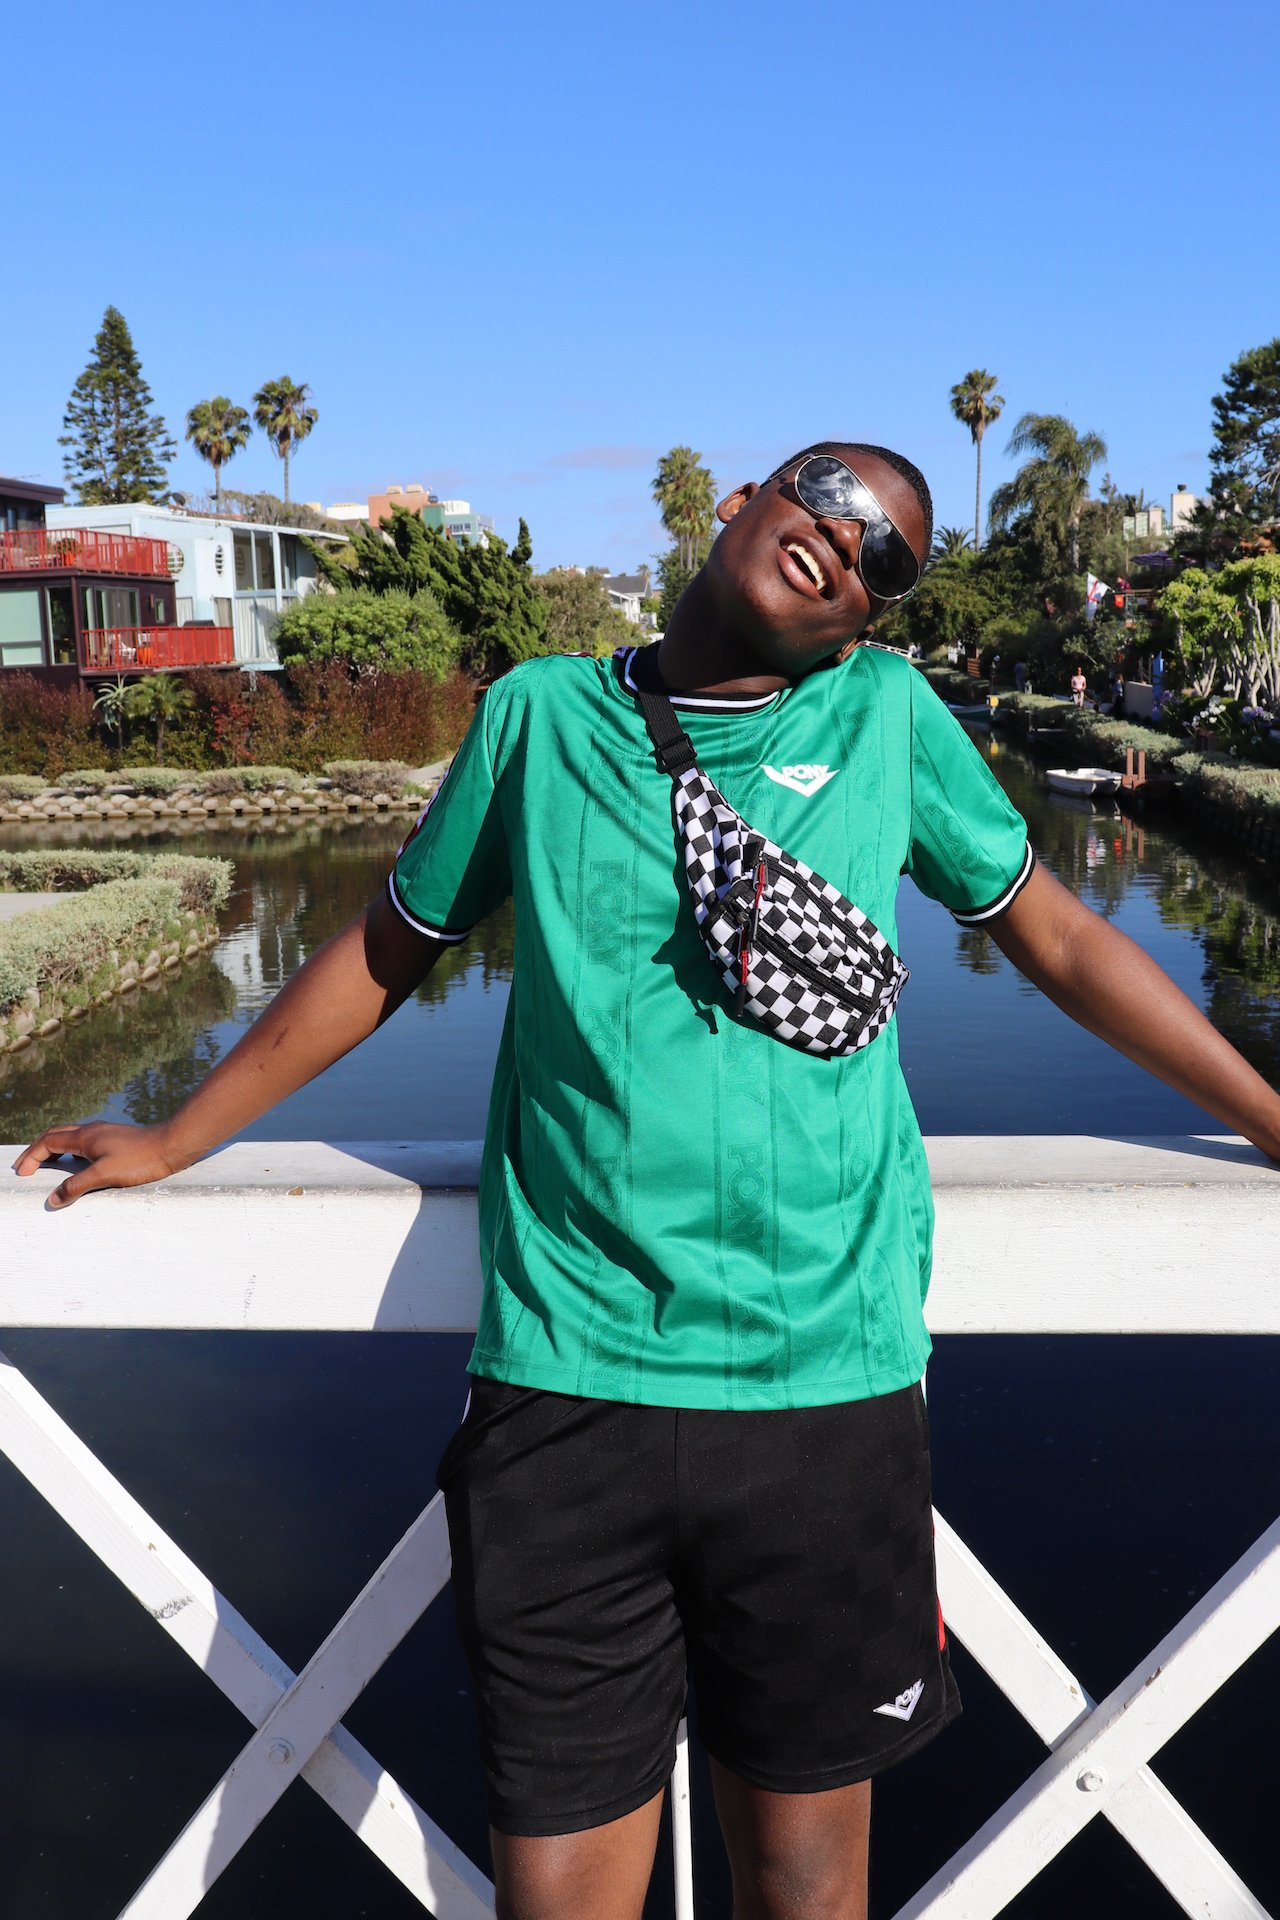 Day Trip to Santa Monica Venice Canals